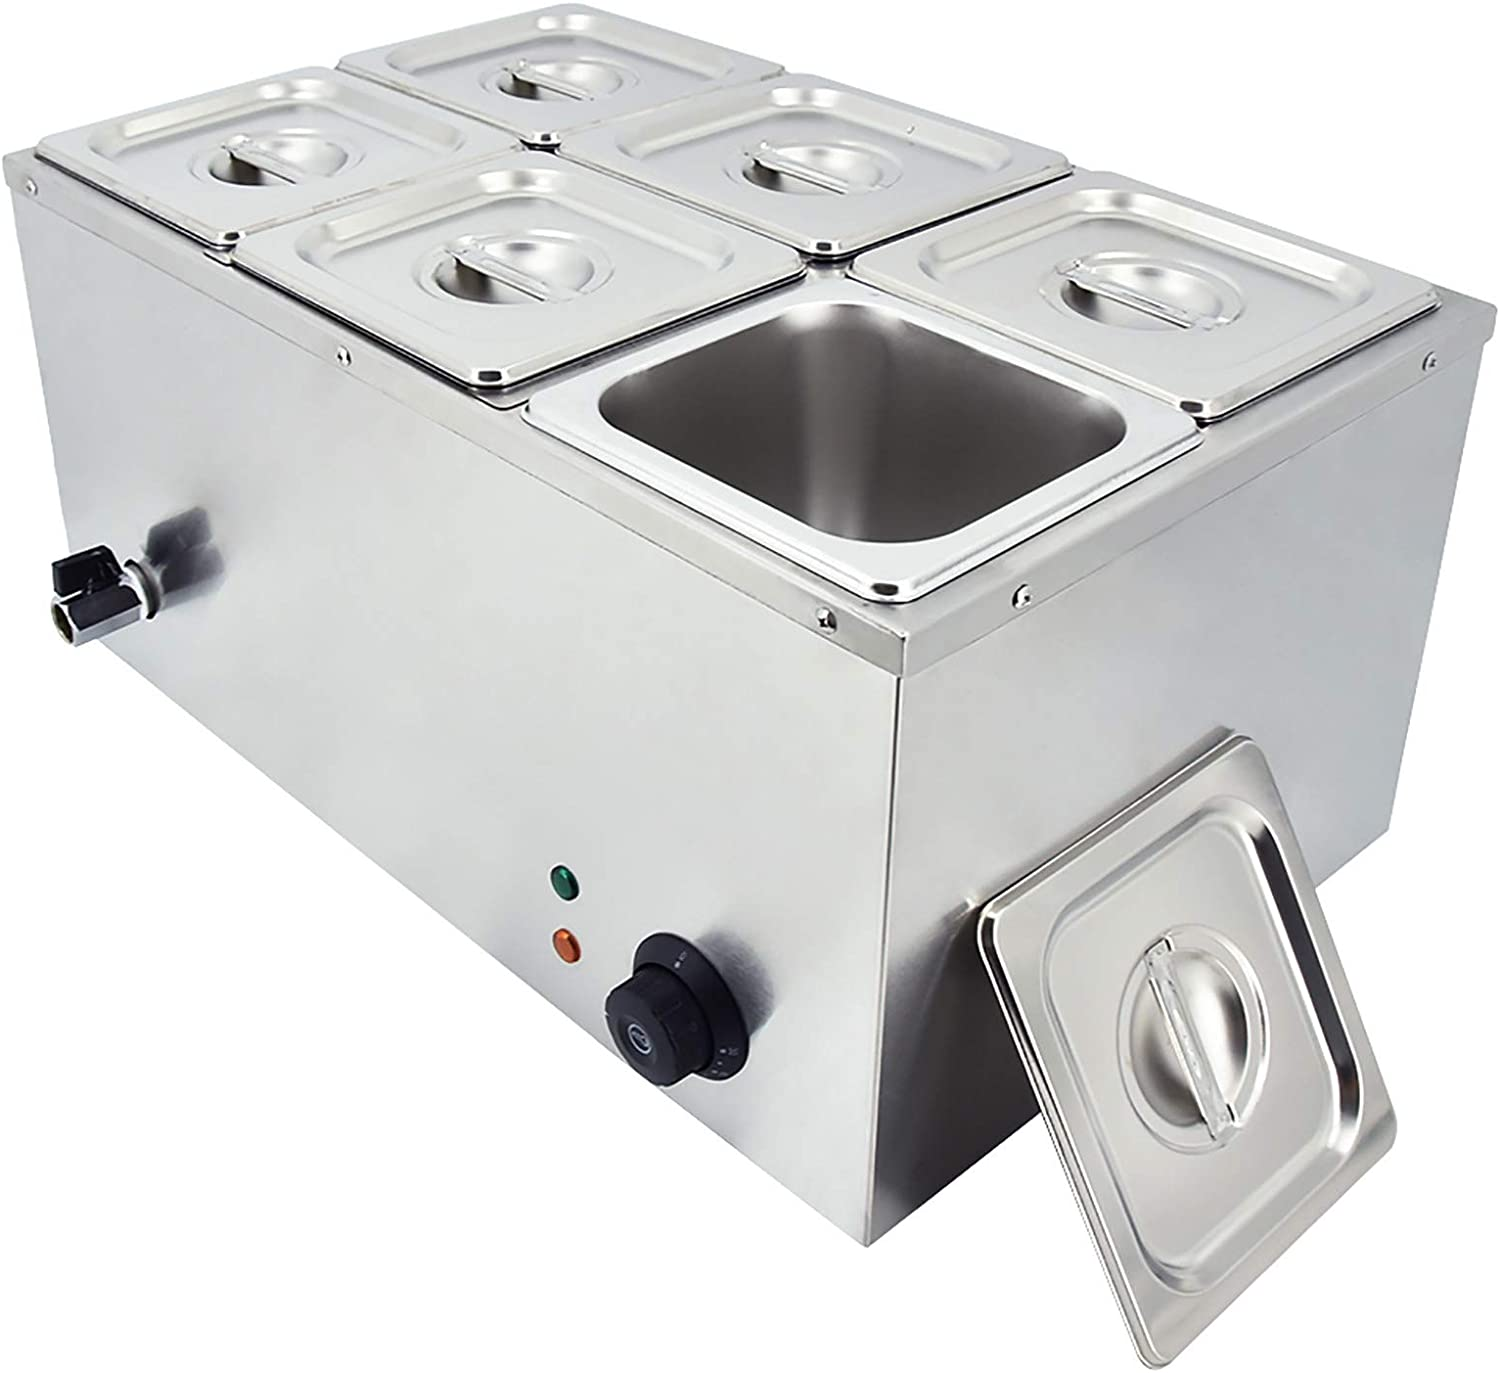 Commercial Food Warmer 6-Pan Electric OFFer 110V Stainless Marie Limited price sale Bain